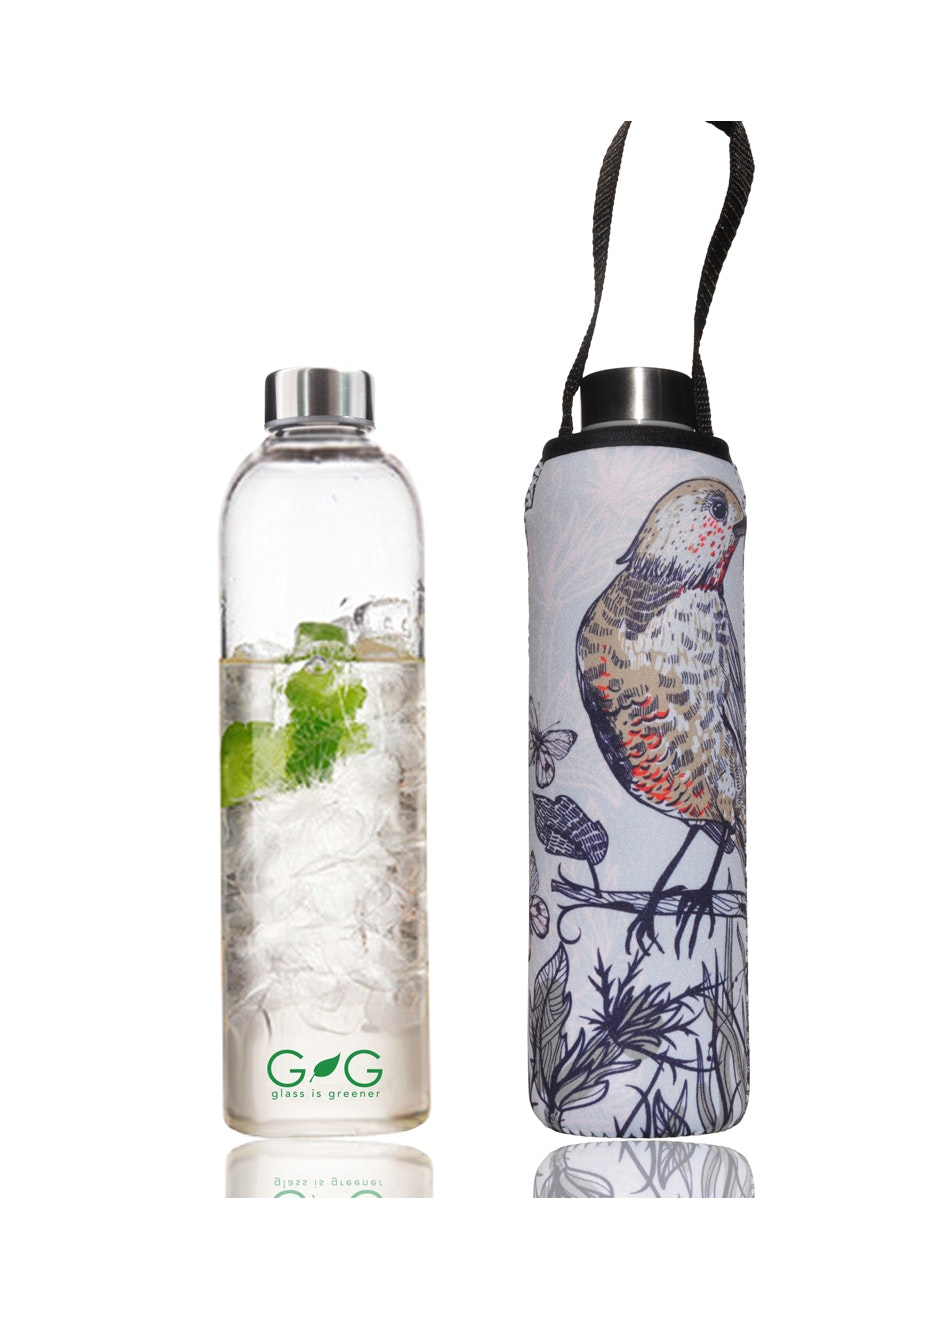 BBBYO - Glass Is Greener Bottle 750 ml + Carry Cover (Perch Print) -750 ml